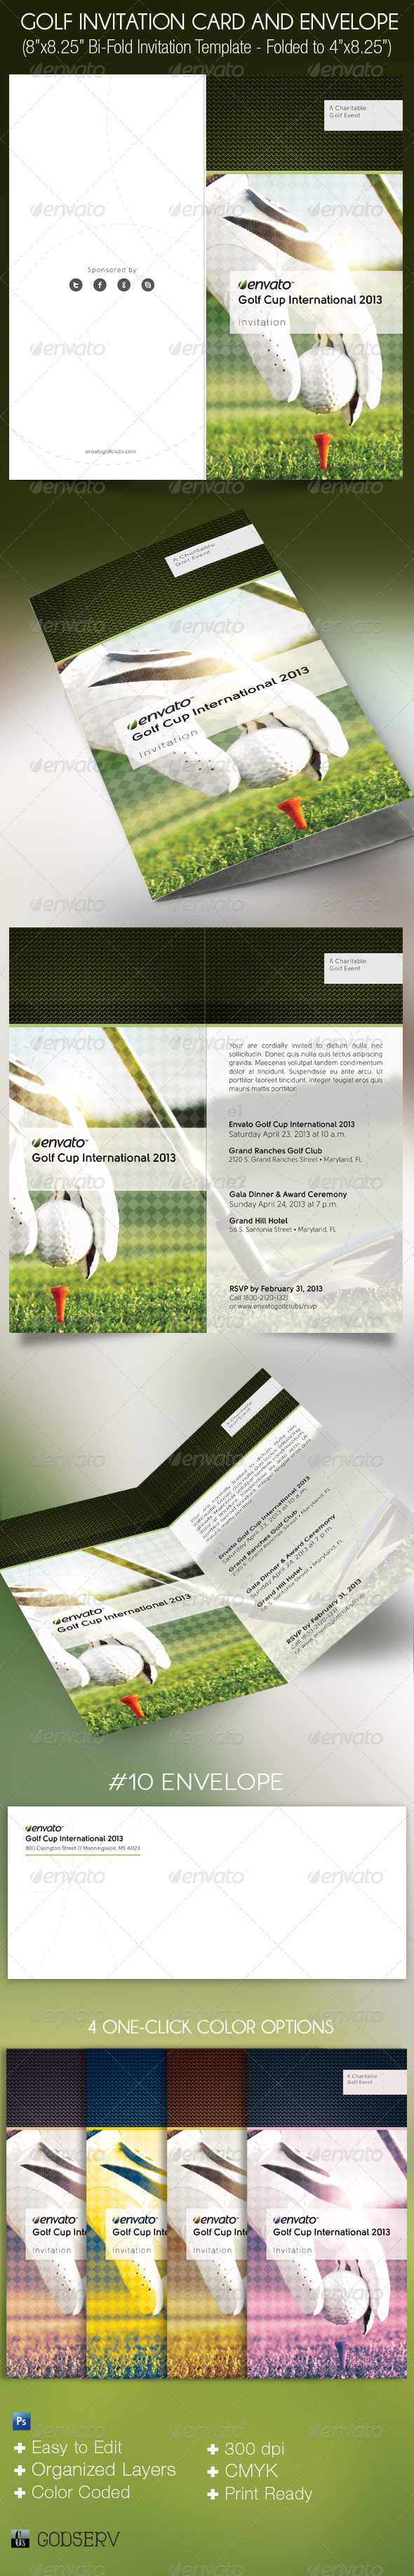 Golf Invitation Card and Envelope Template - Invitations Cards & Invites